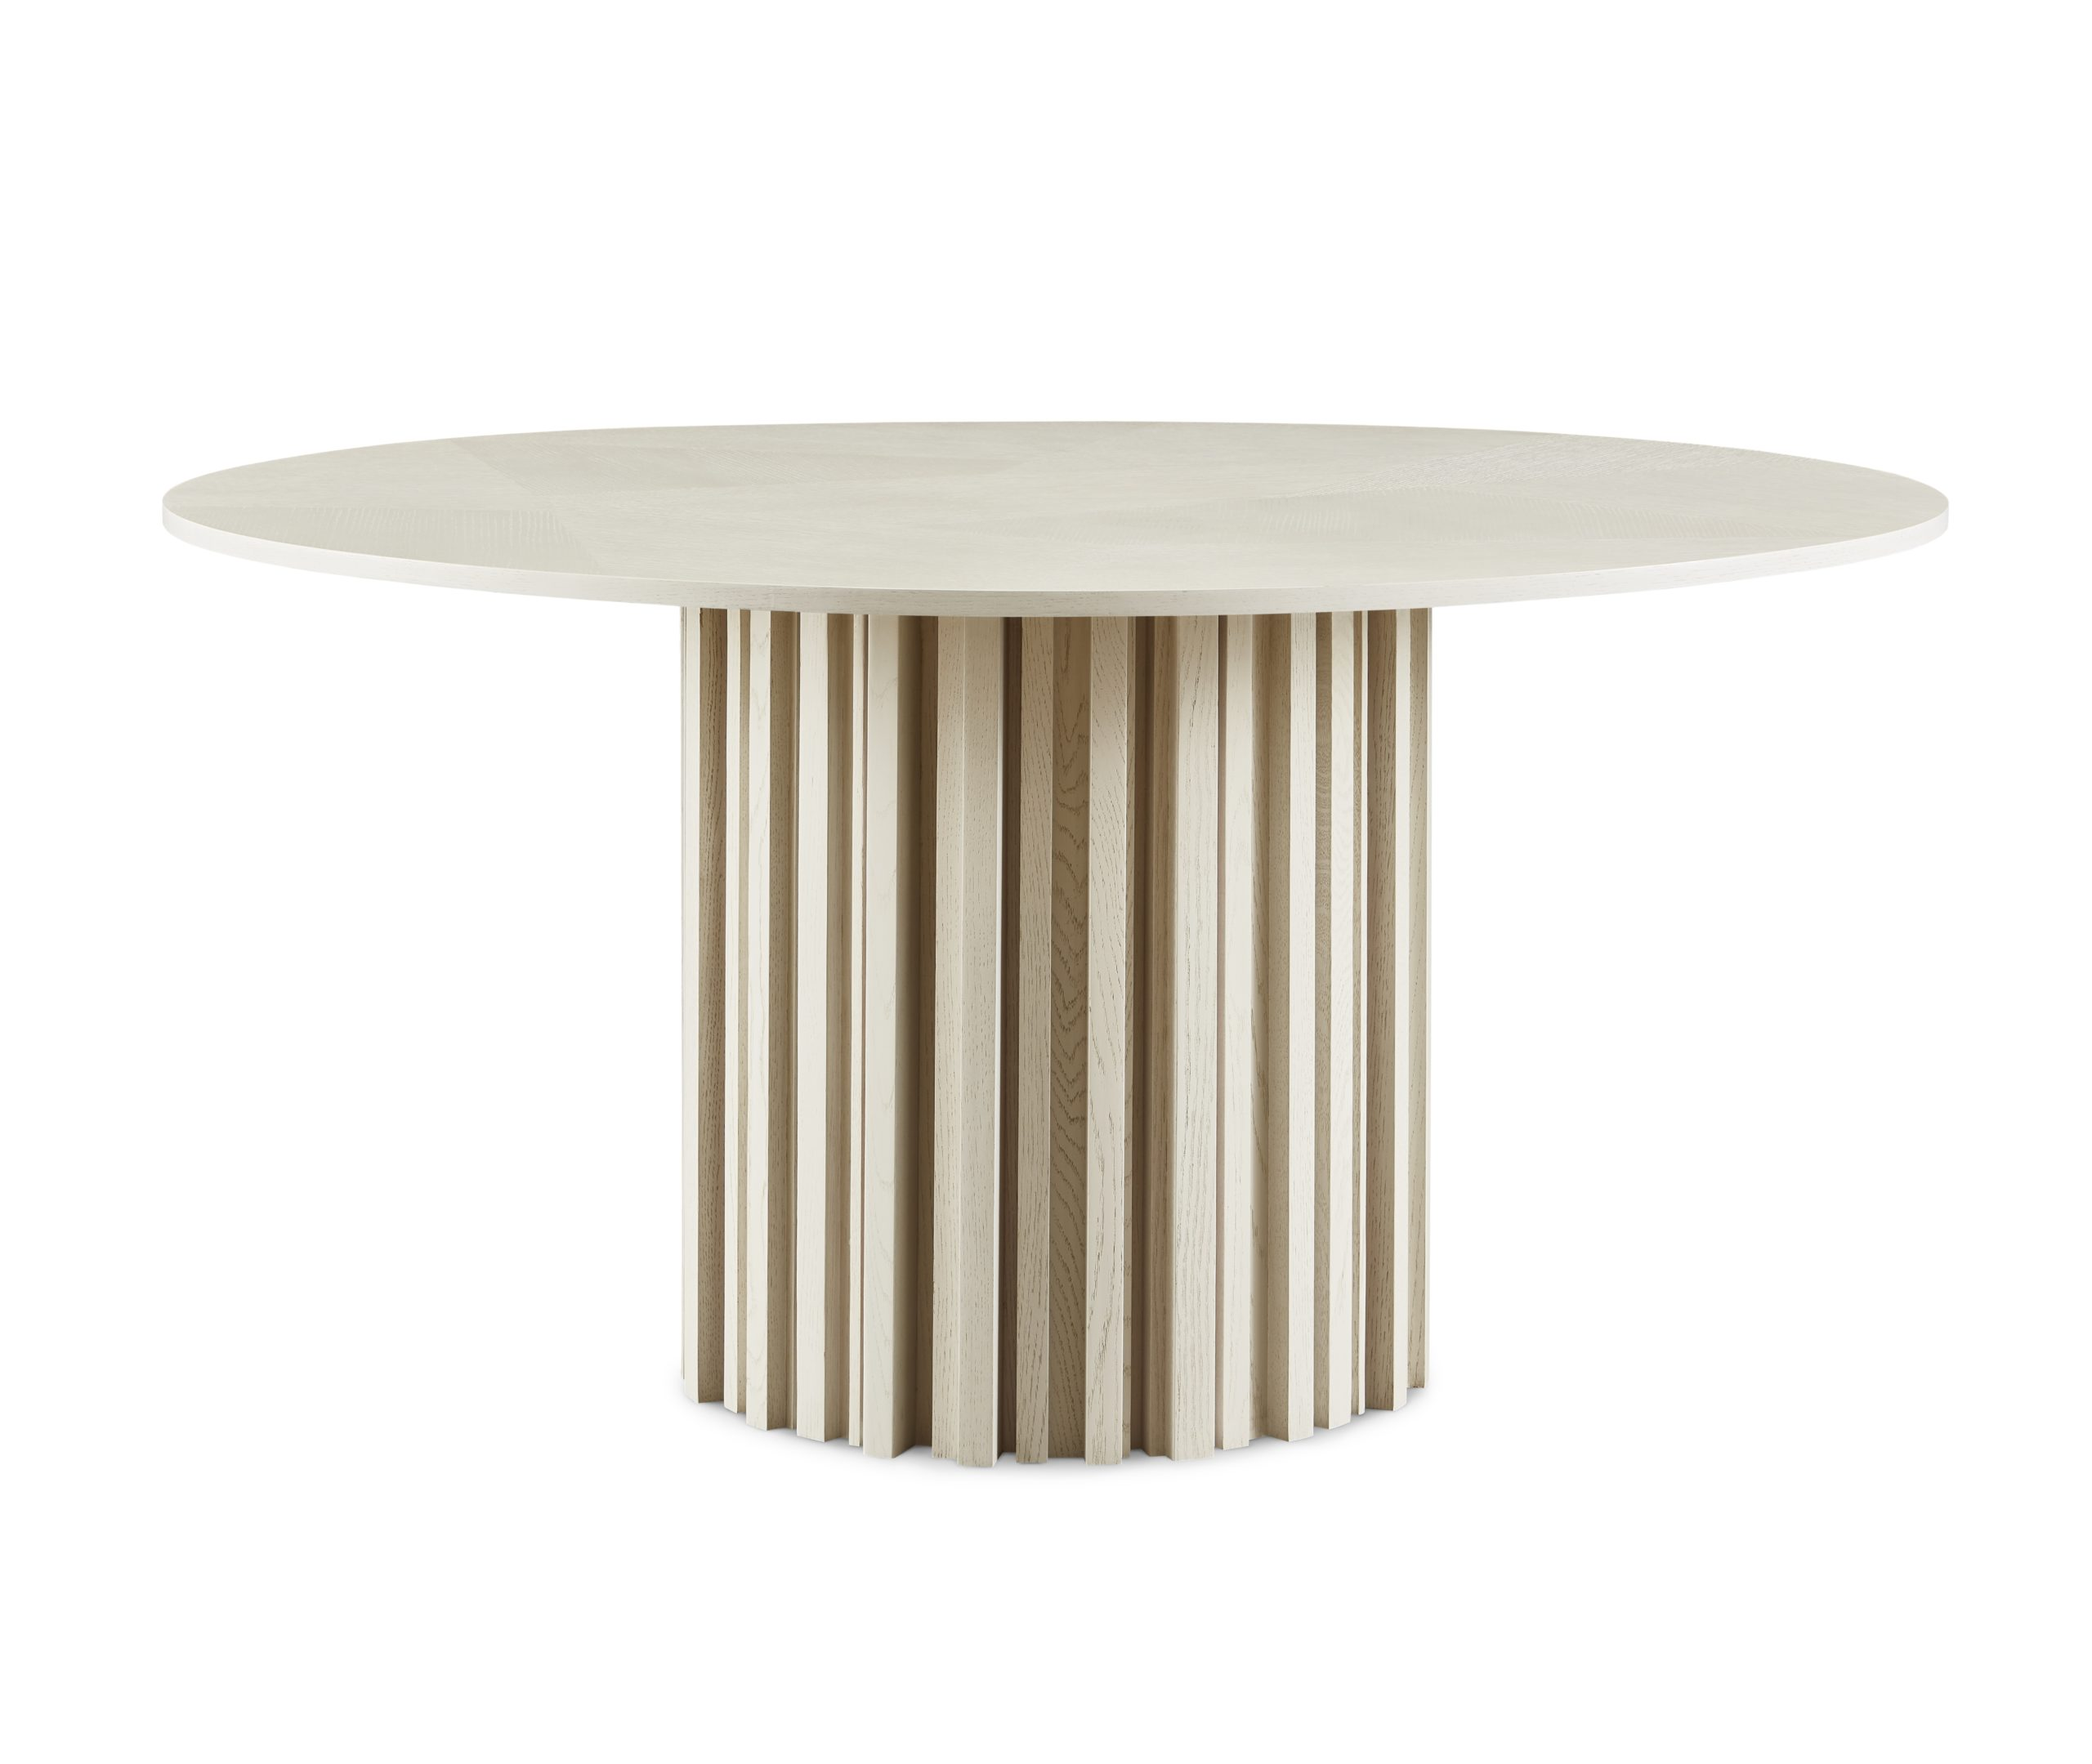 Baker_products_WNWN_huxley_round_dining_table_BAA3054_FRONT-scaled-6